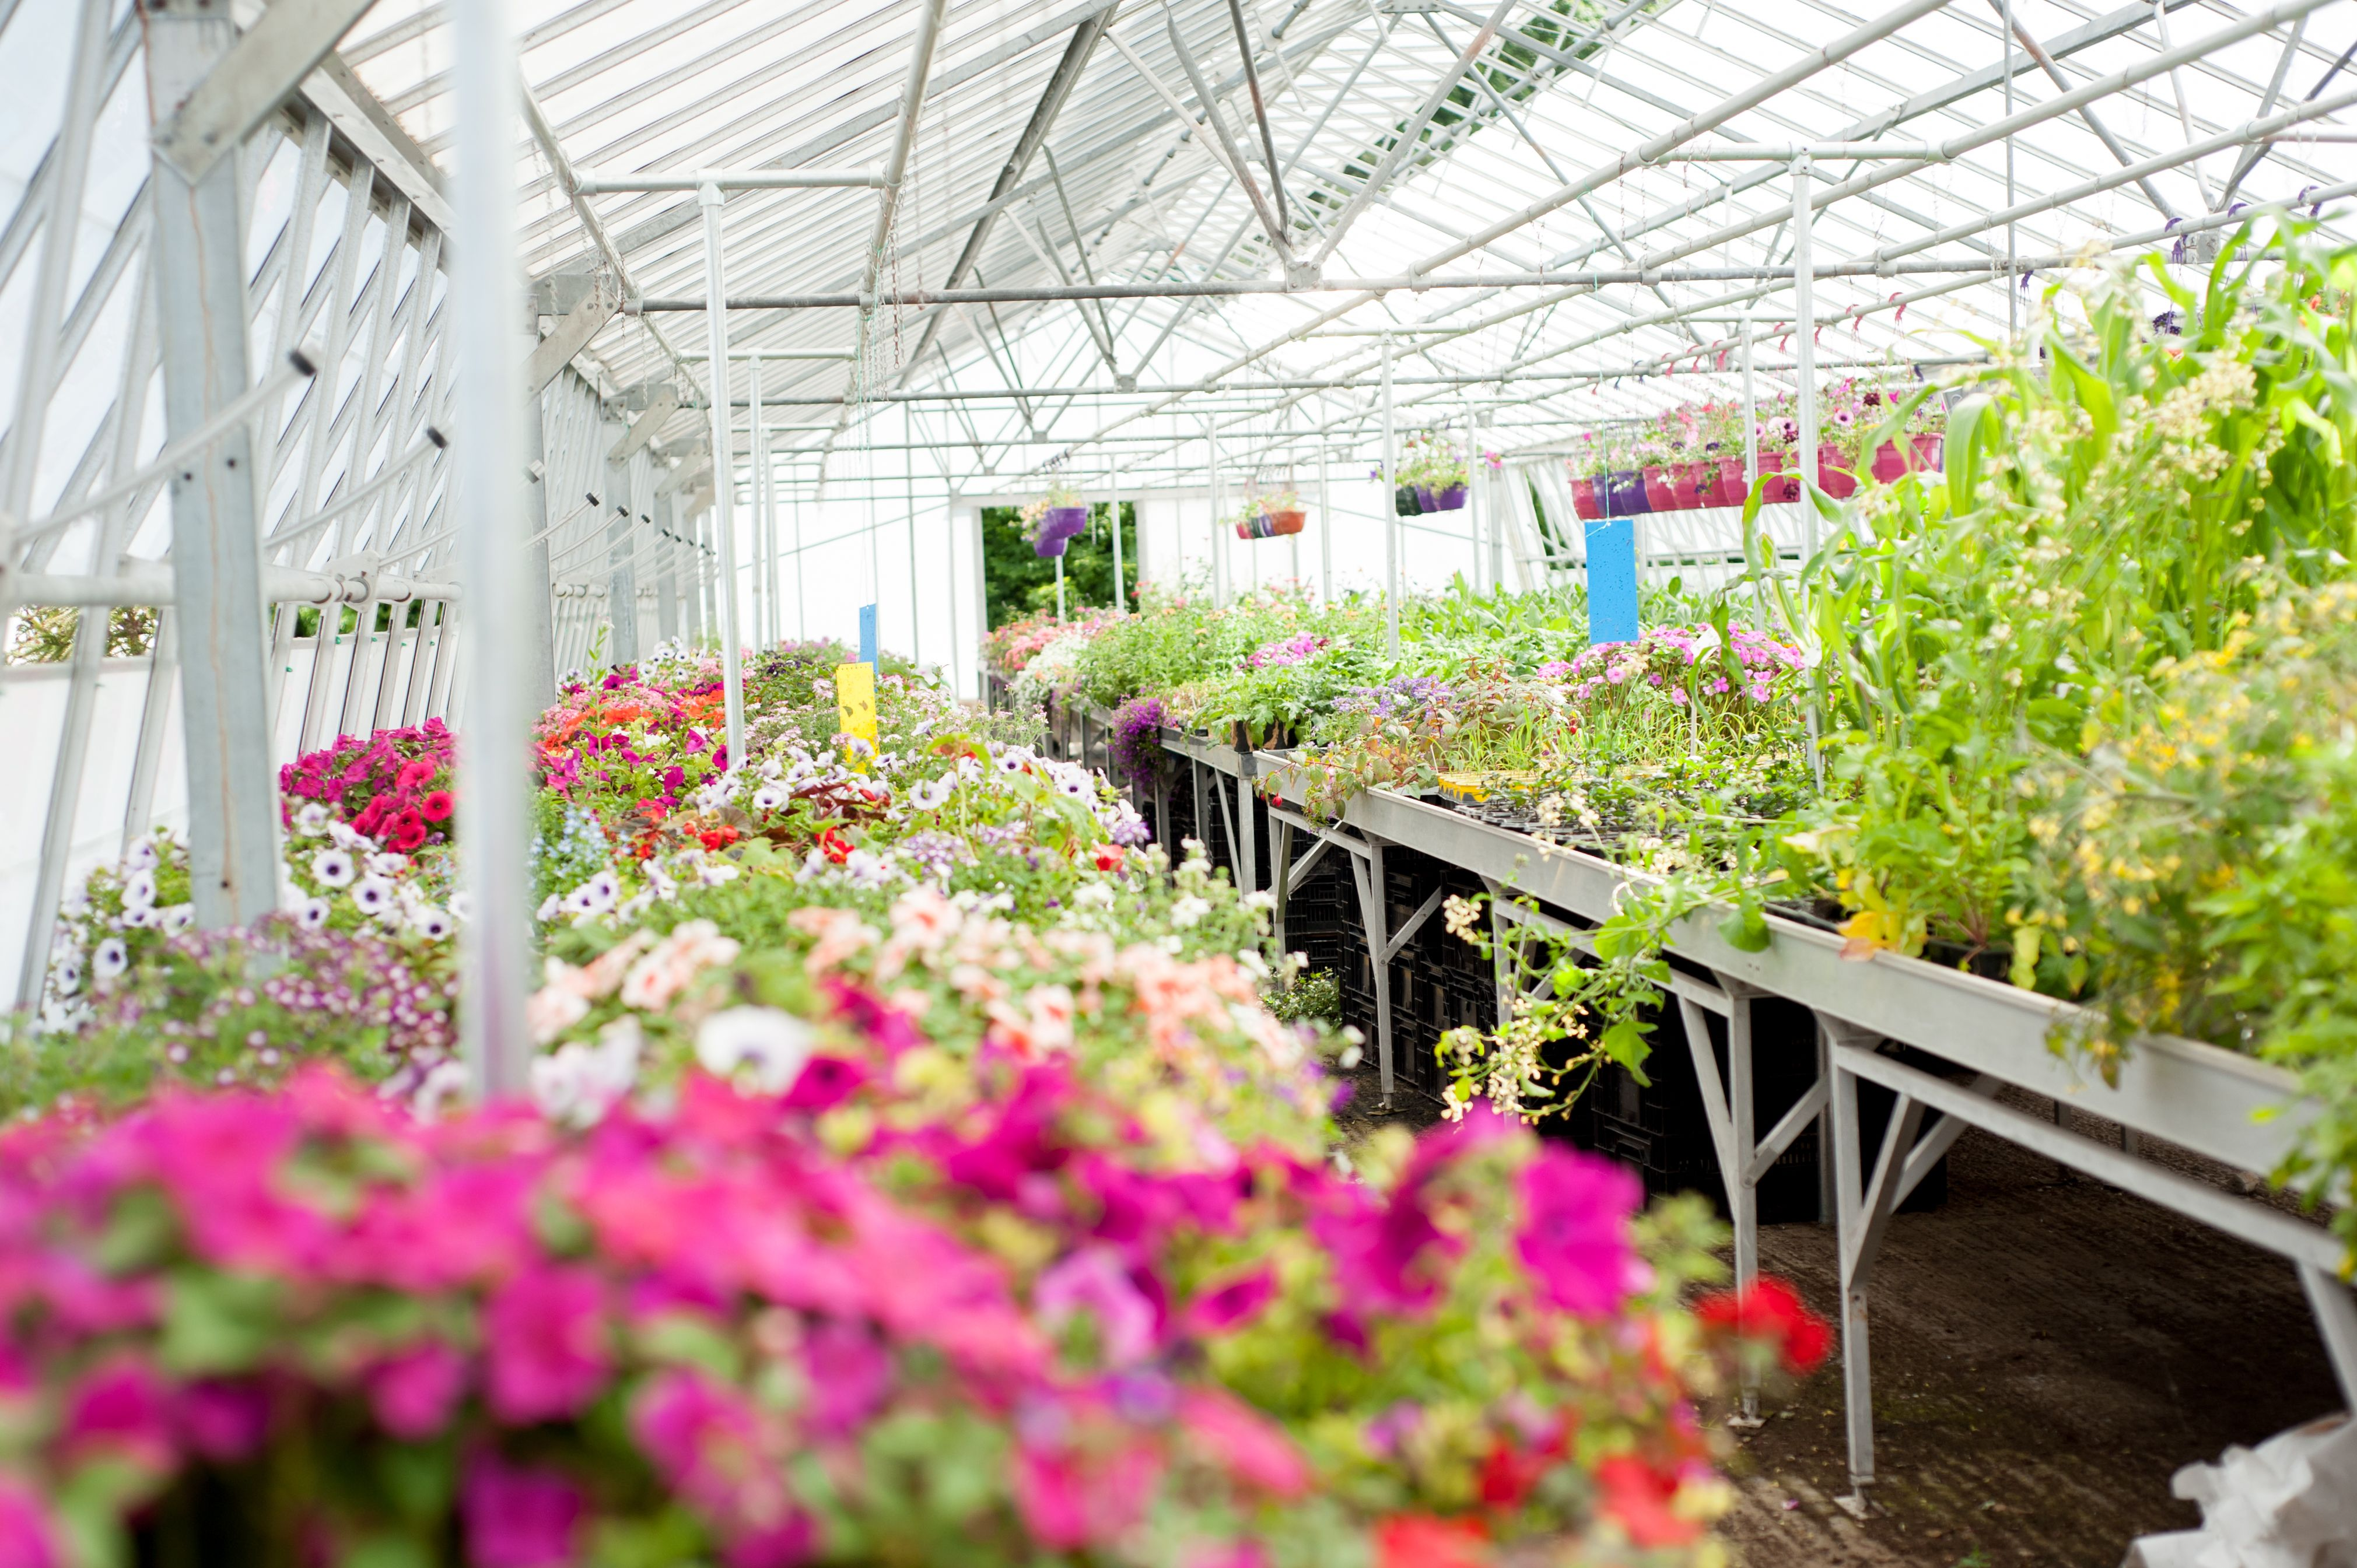 King S Park Nursery Selling Hanging Baskets And Flower Troughs